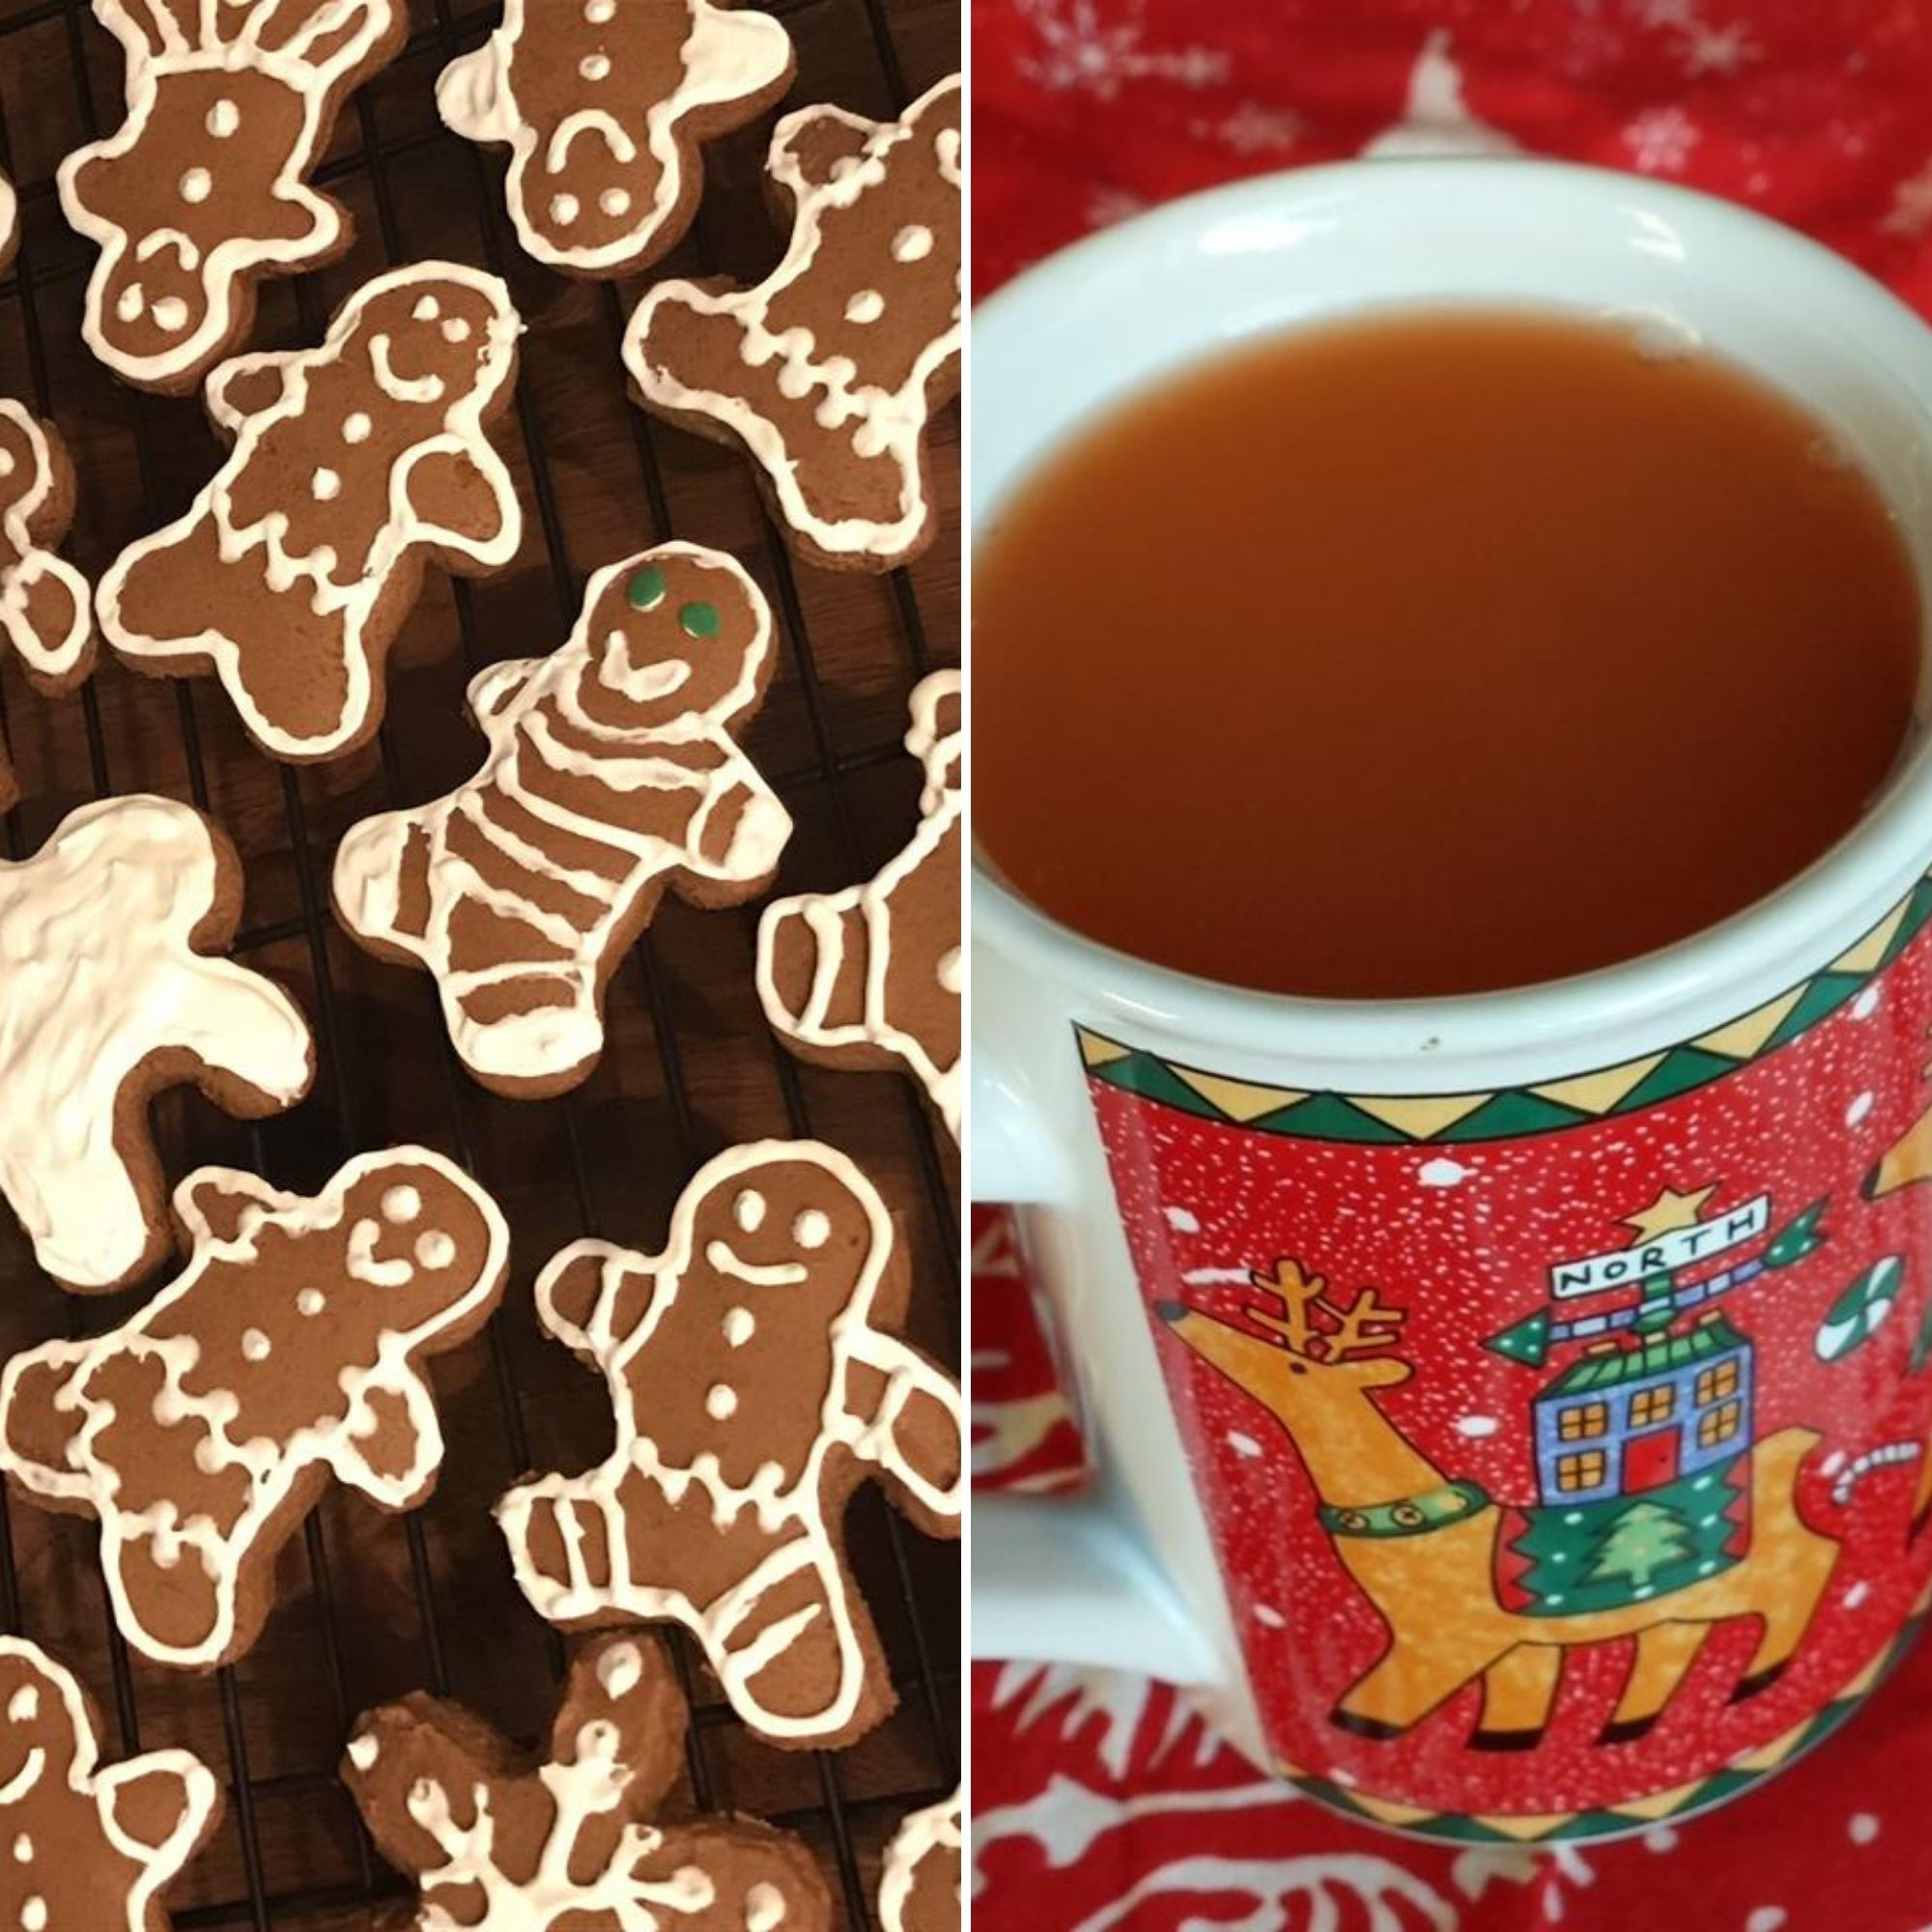 Gingerbread Cookies and a mug of Wassail